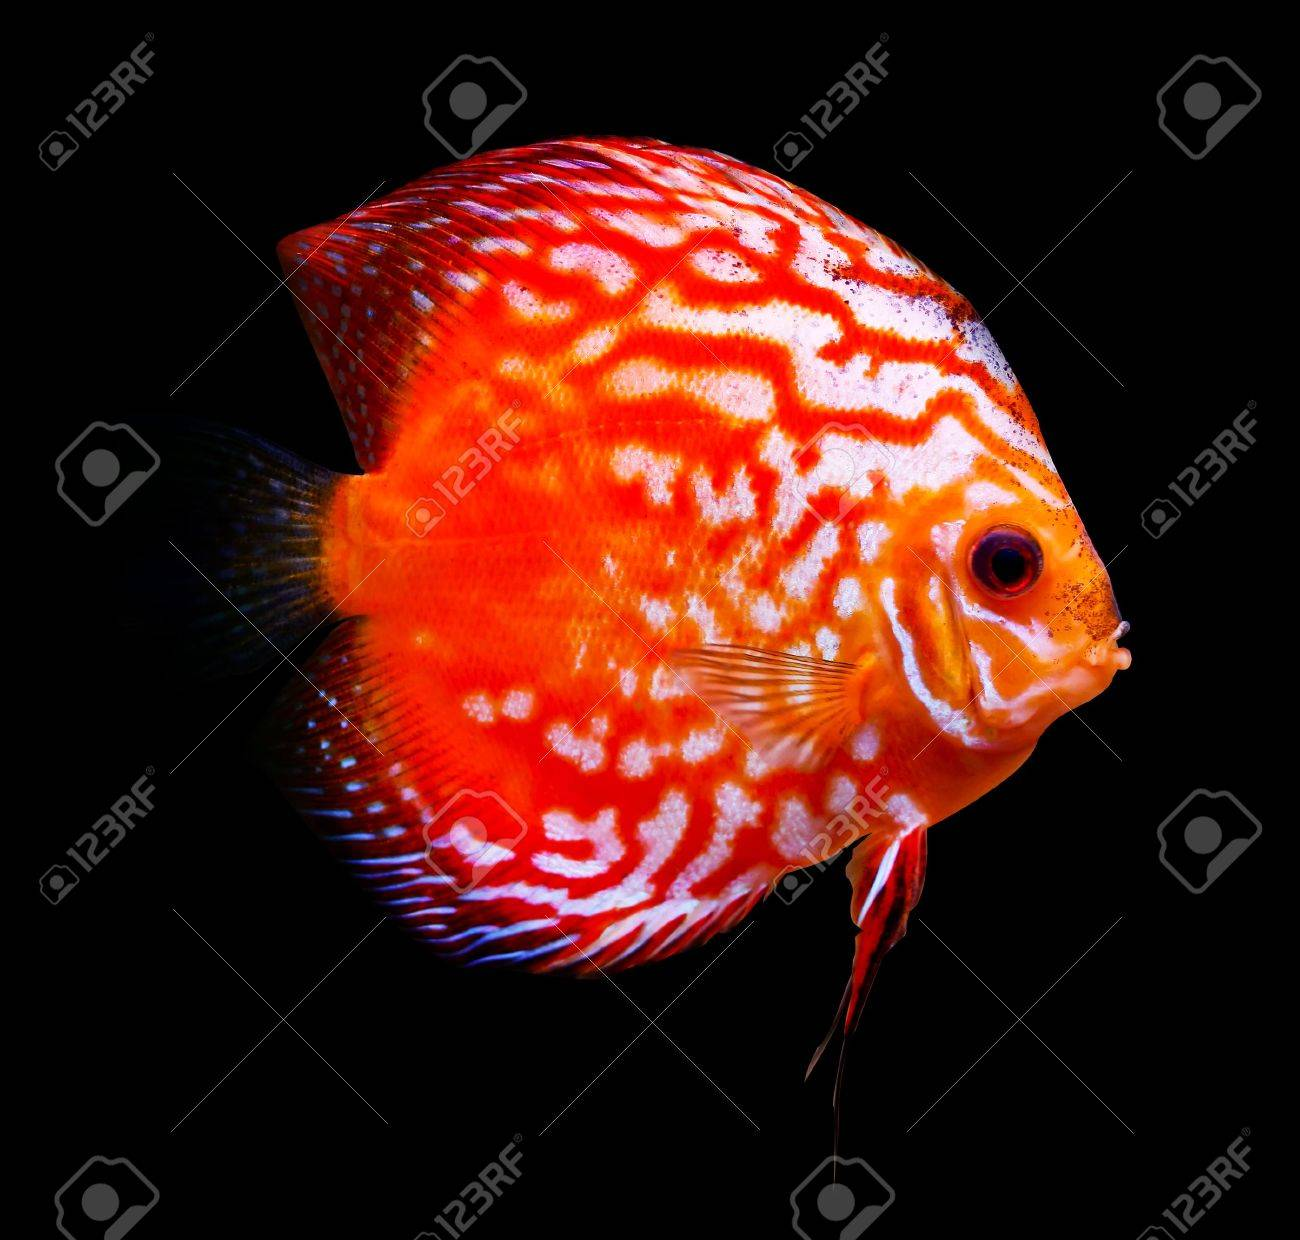 Colorful Tropical Symphysodon Discus Fish Stock Photo, Picture And ...